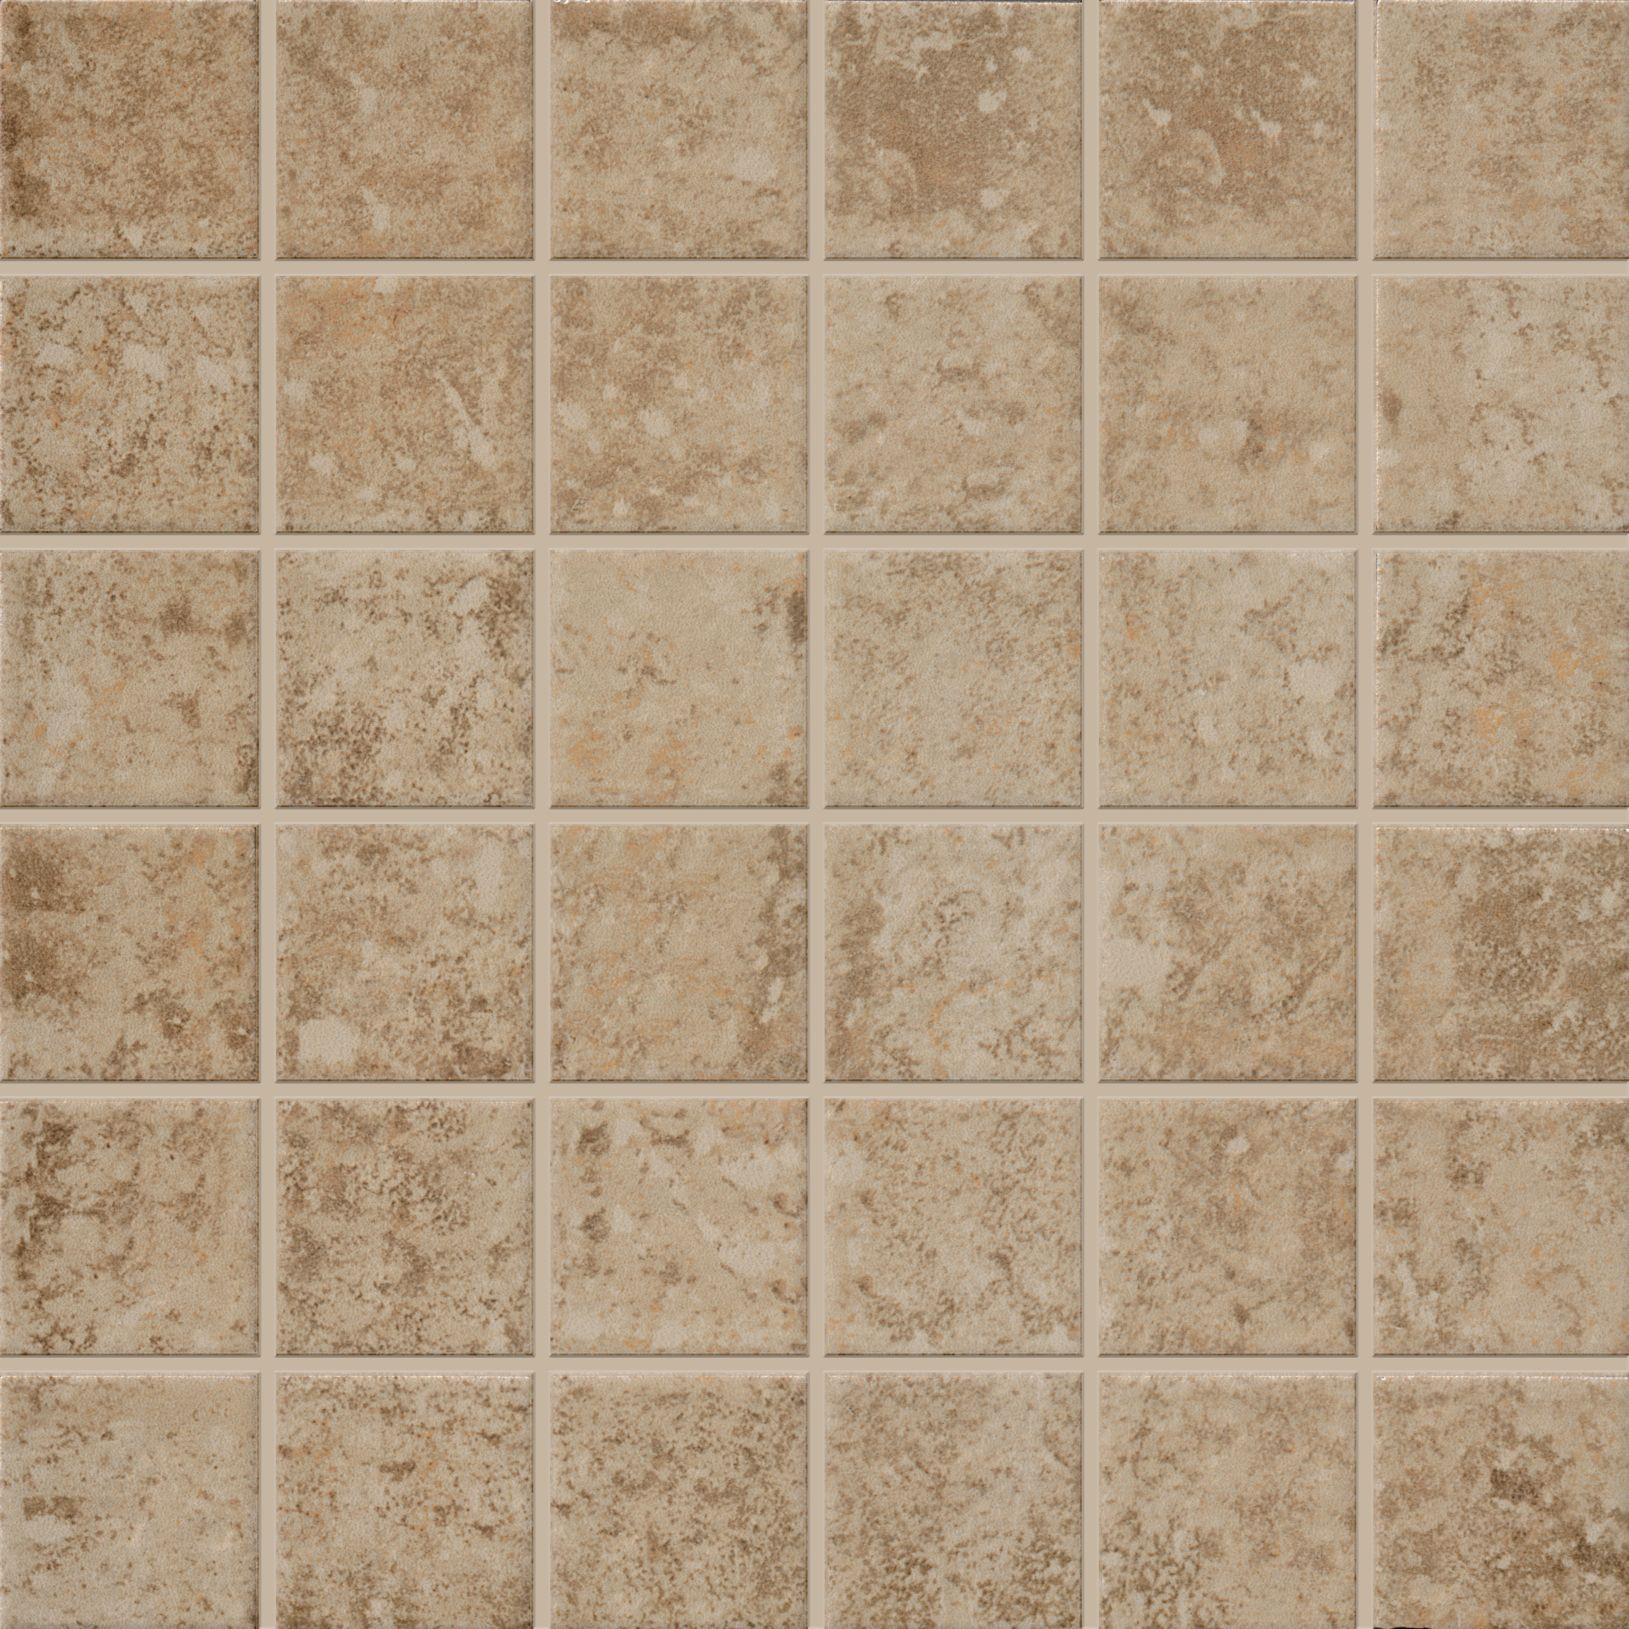 CeramicPorcelainTile Steppington T530-ST92 TraditionalTaupe